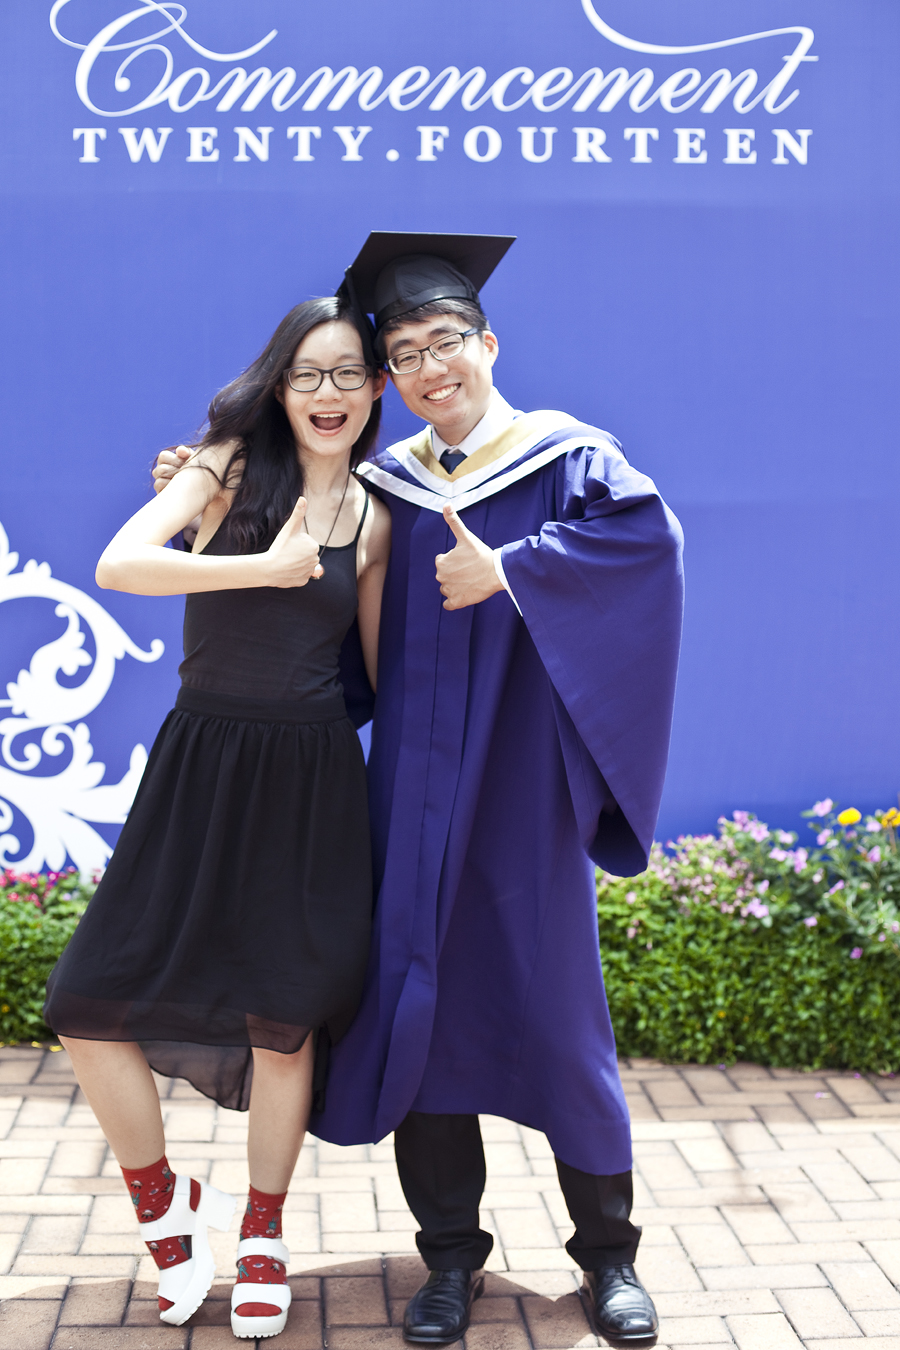 Ren and brother at the NUS Commencement 2014.